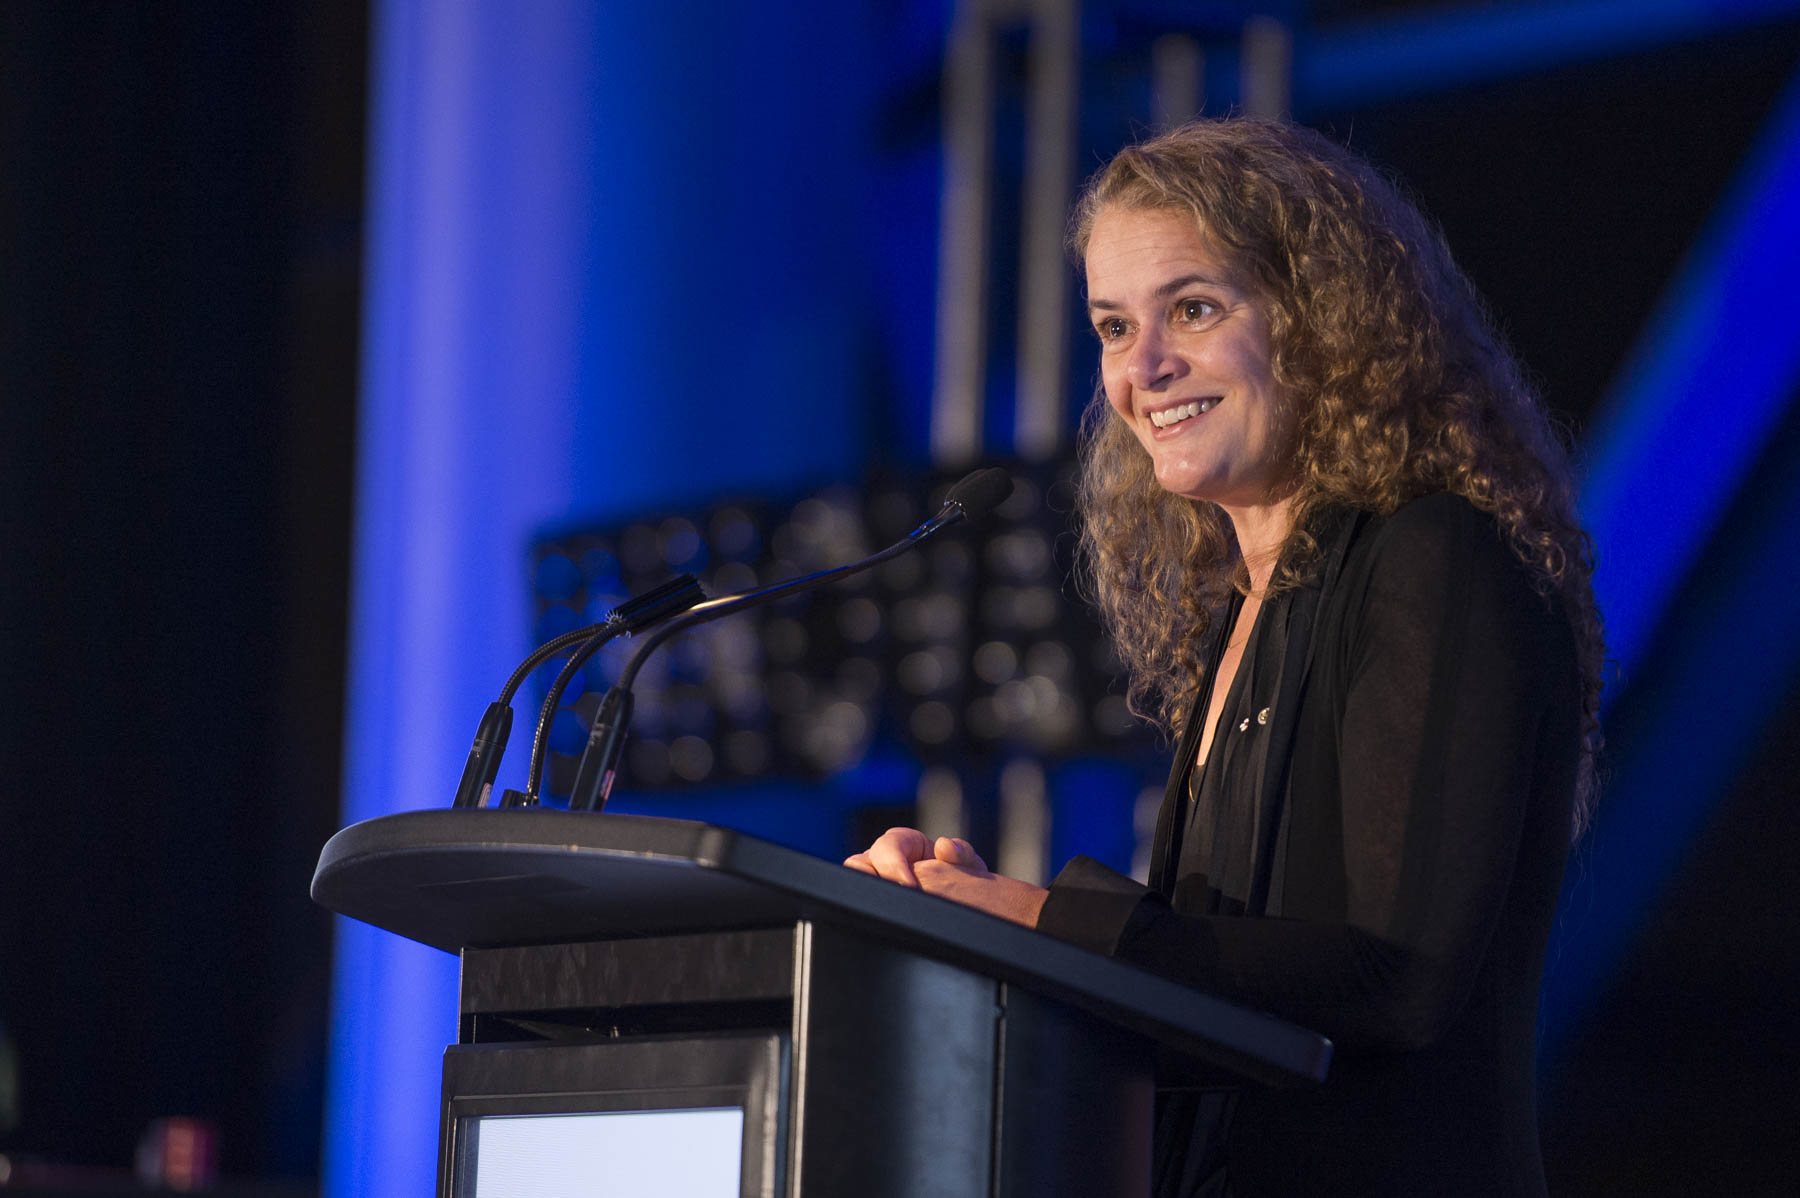 Her Excellency the Right Honourable Julie Payette delivered opening remarks at the 9th annual Canadian Science Policy Conference at the Shaw Centre, in Ottawa, on November 1, 2017.